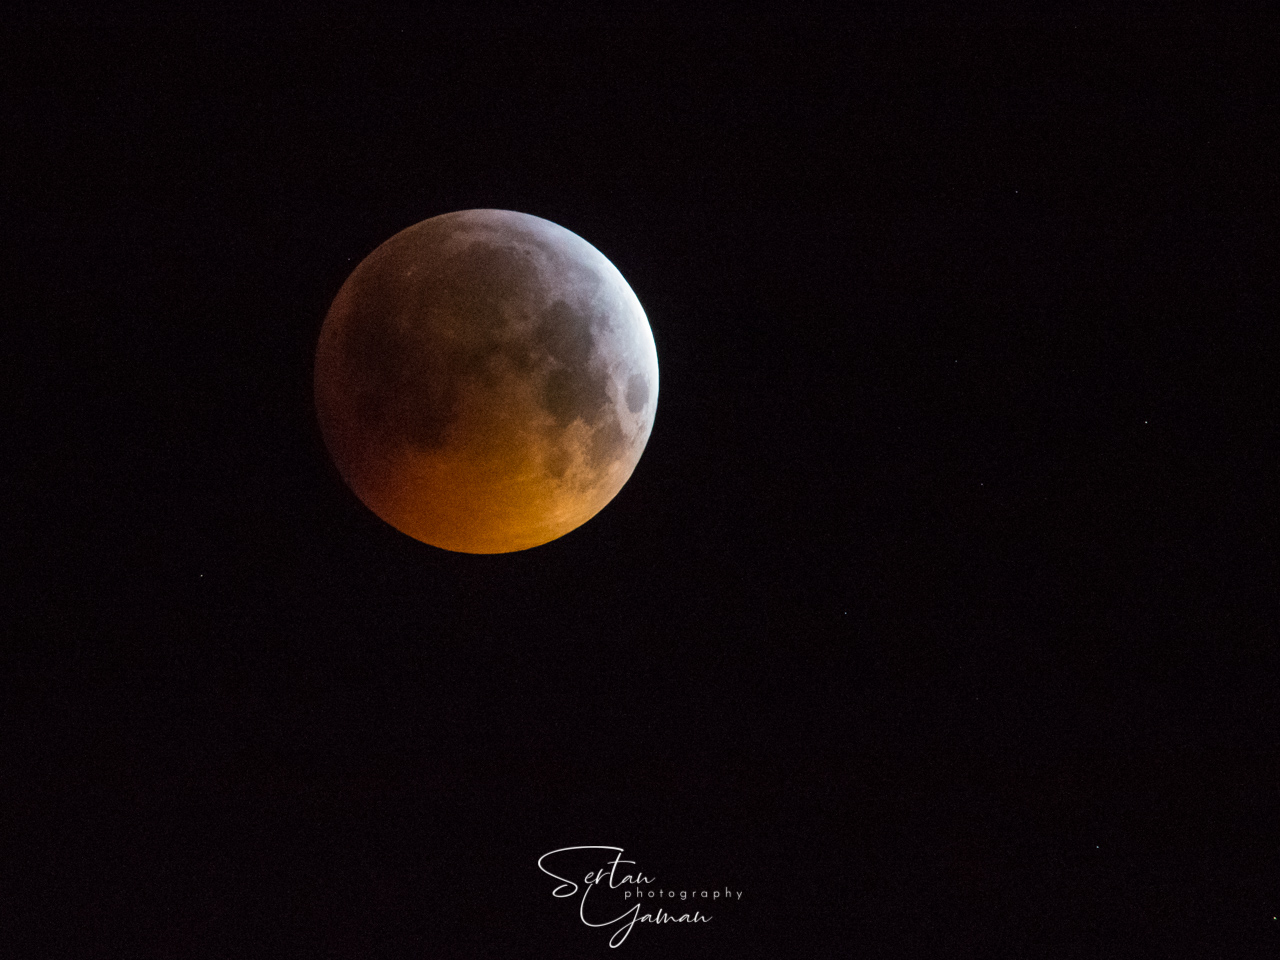 Amsterdam, The Netherlands - January 21, 2019: Super blood wolf moon, moon eclipse on sky